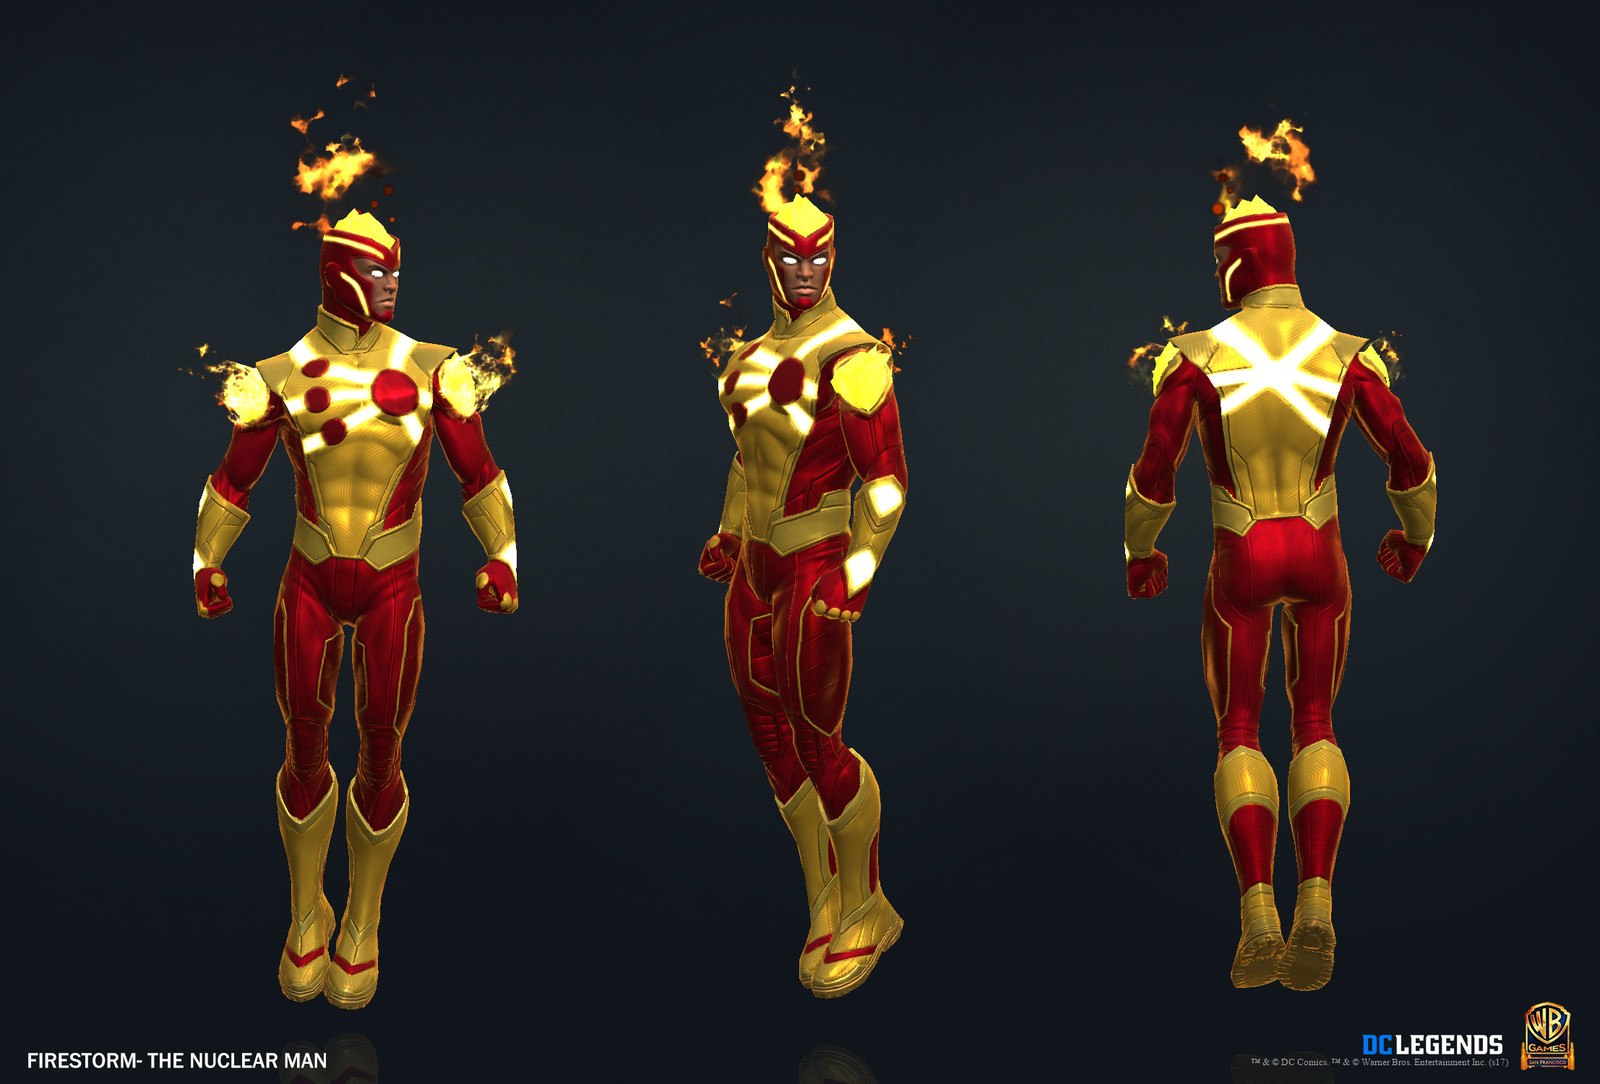 Firestorm Heroic.  High Poly, Low Poly and Textures/Material work done by me. VFX created by Alex Mangulabnan.